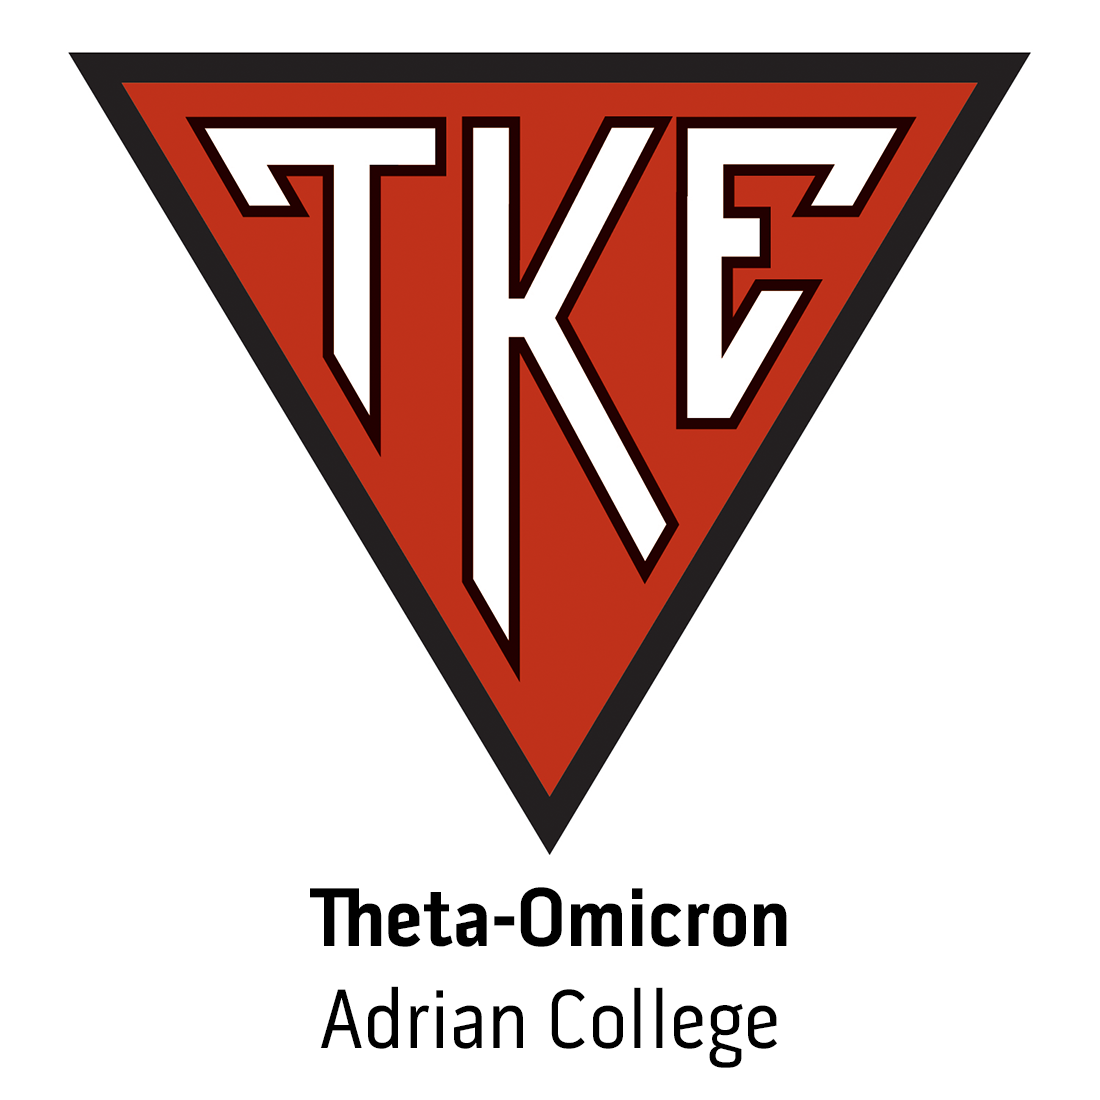 Theta-Omicron Chapter at Adrian College